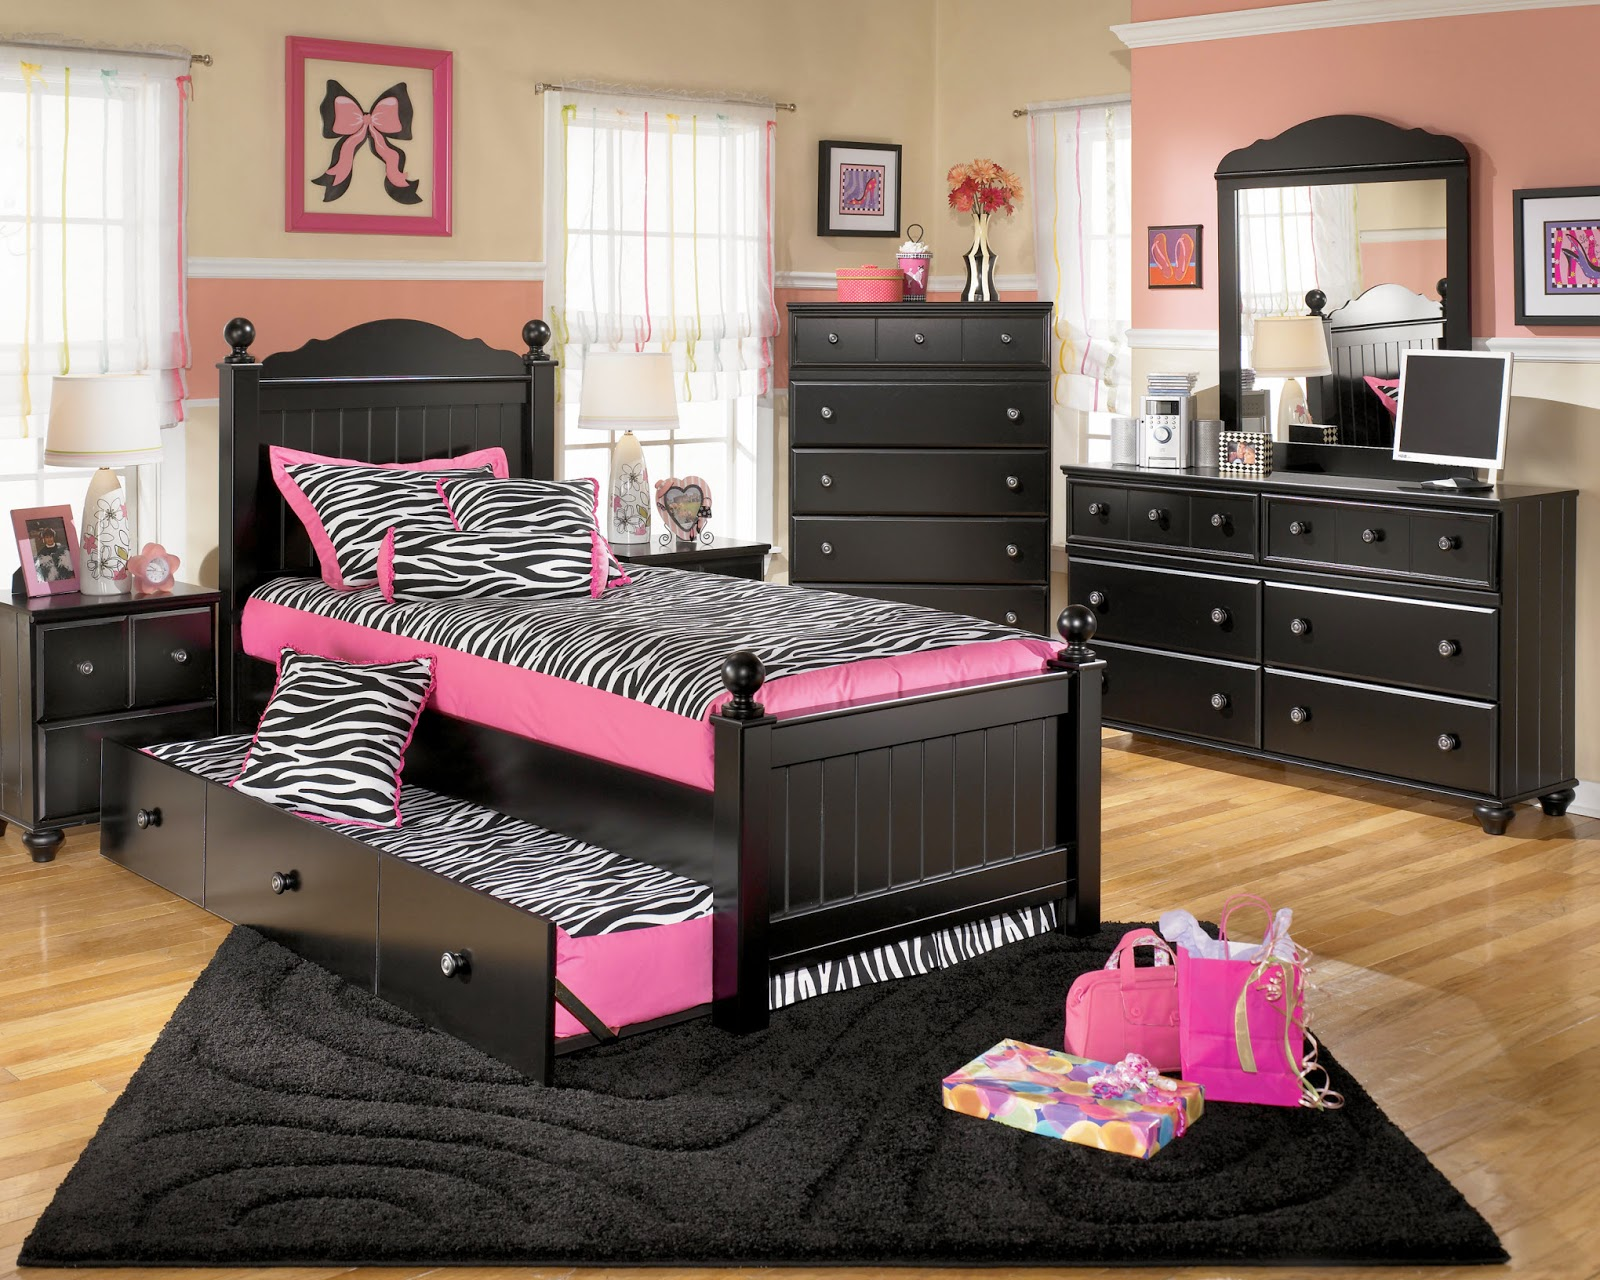 Bedroom Sets For Girls Custom Angel Kids Bedroom Furniture Sets For Girls Plan And Idea